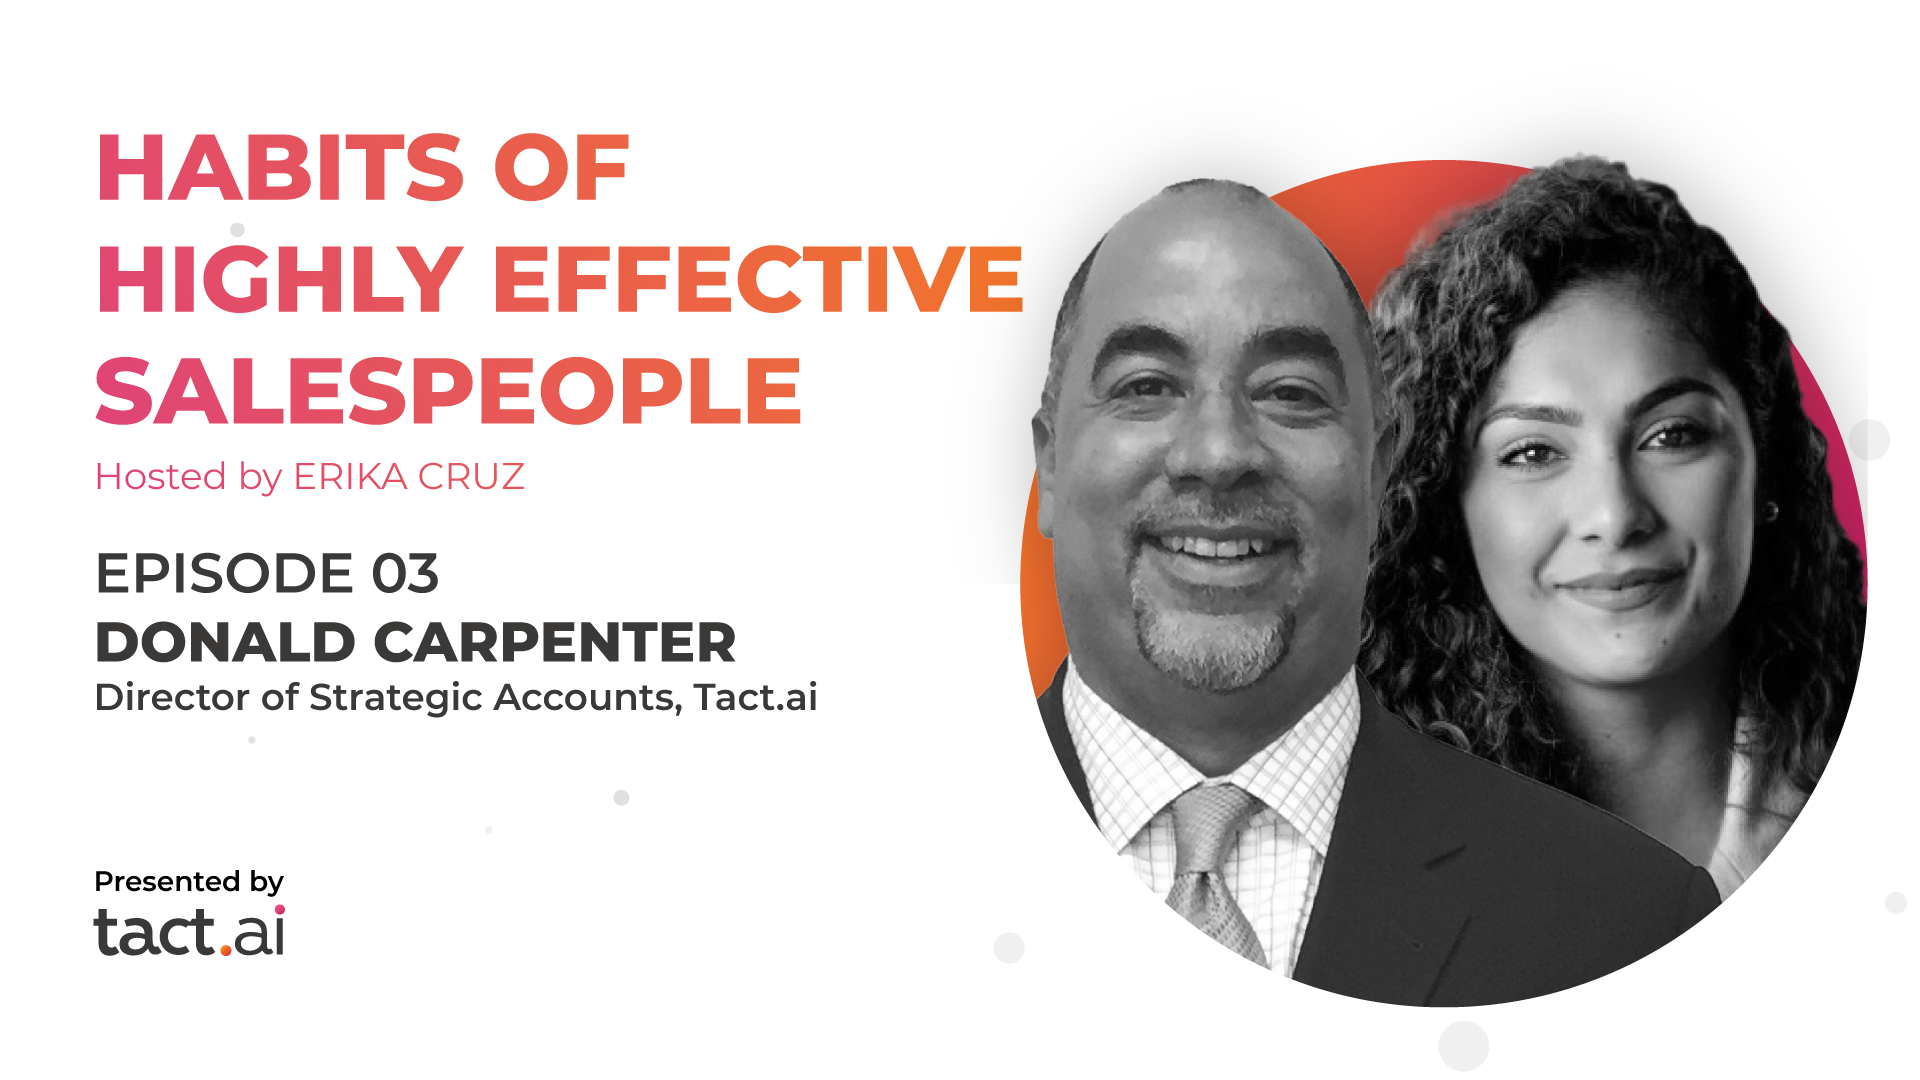 Habits of Highly Effective Salespeople - Donald Carpenter - Episode 3